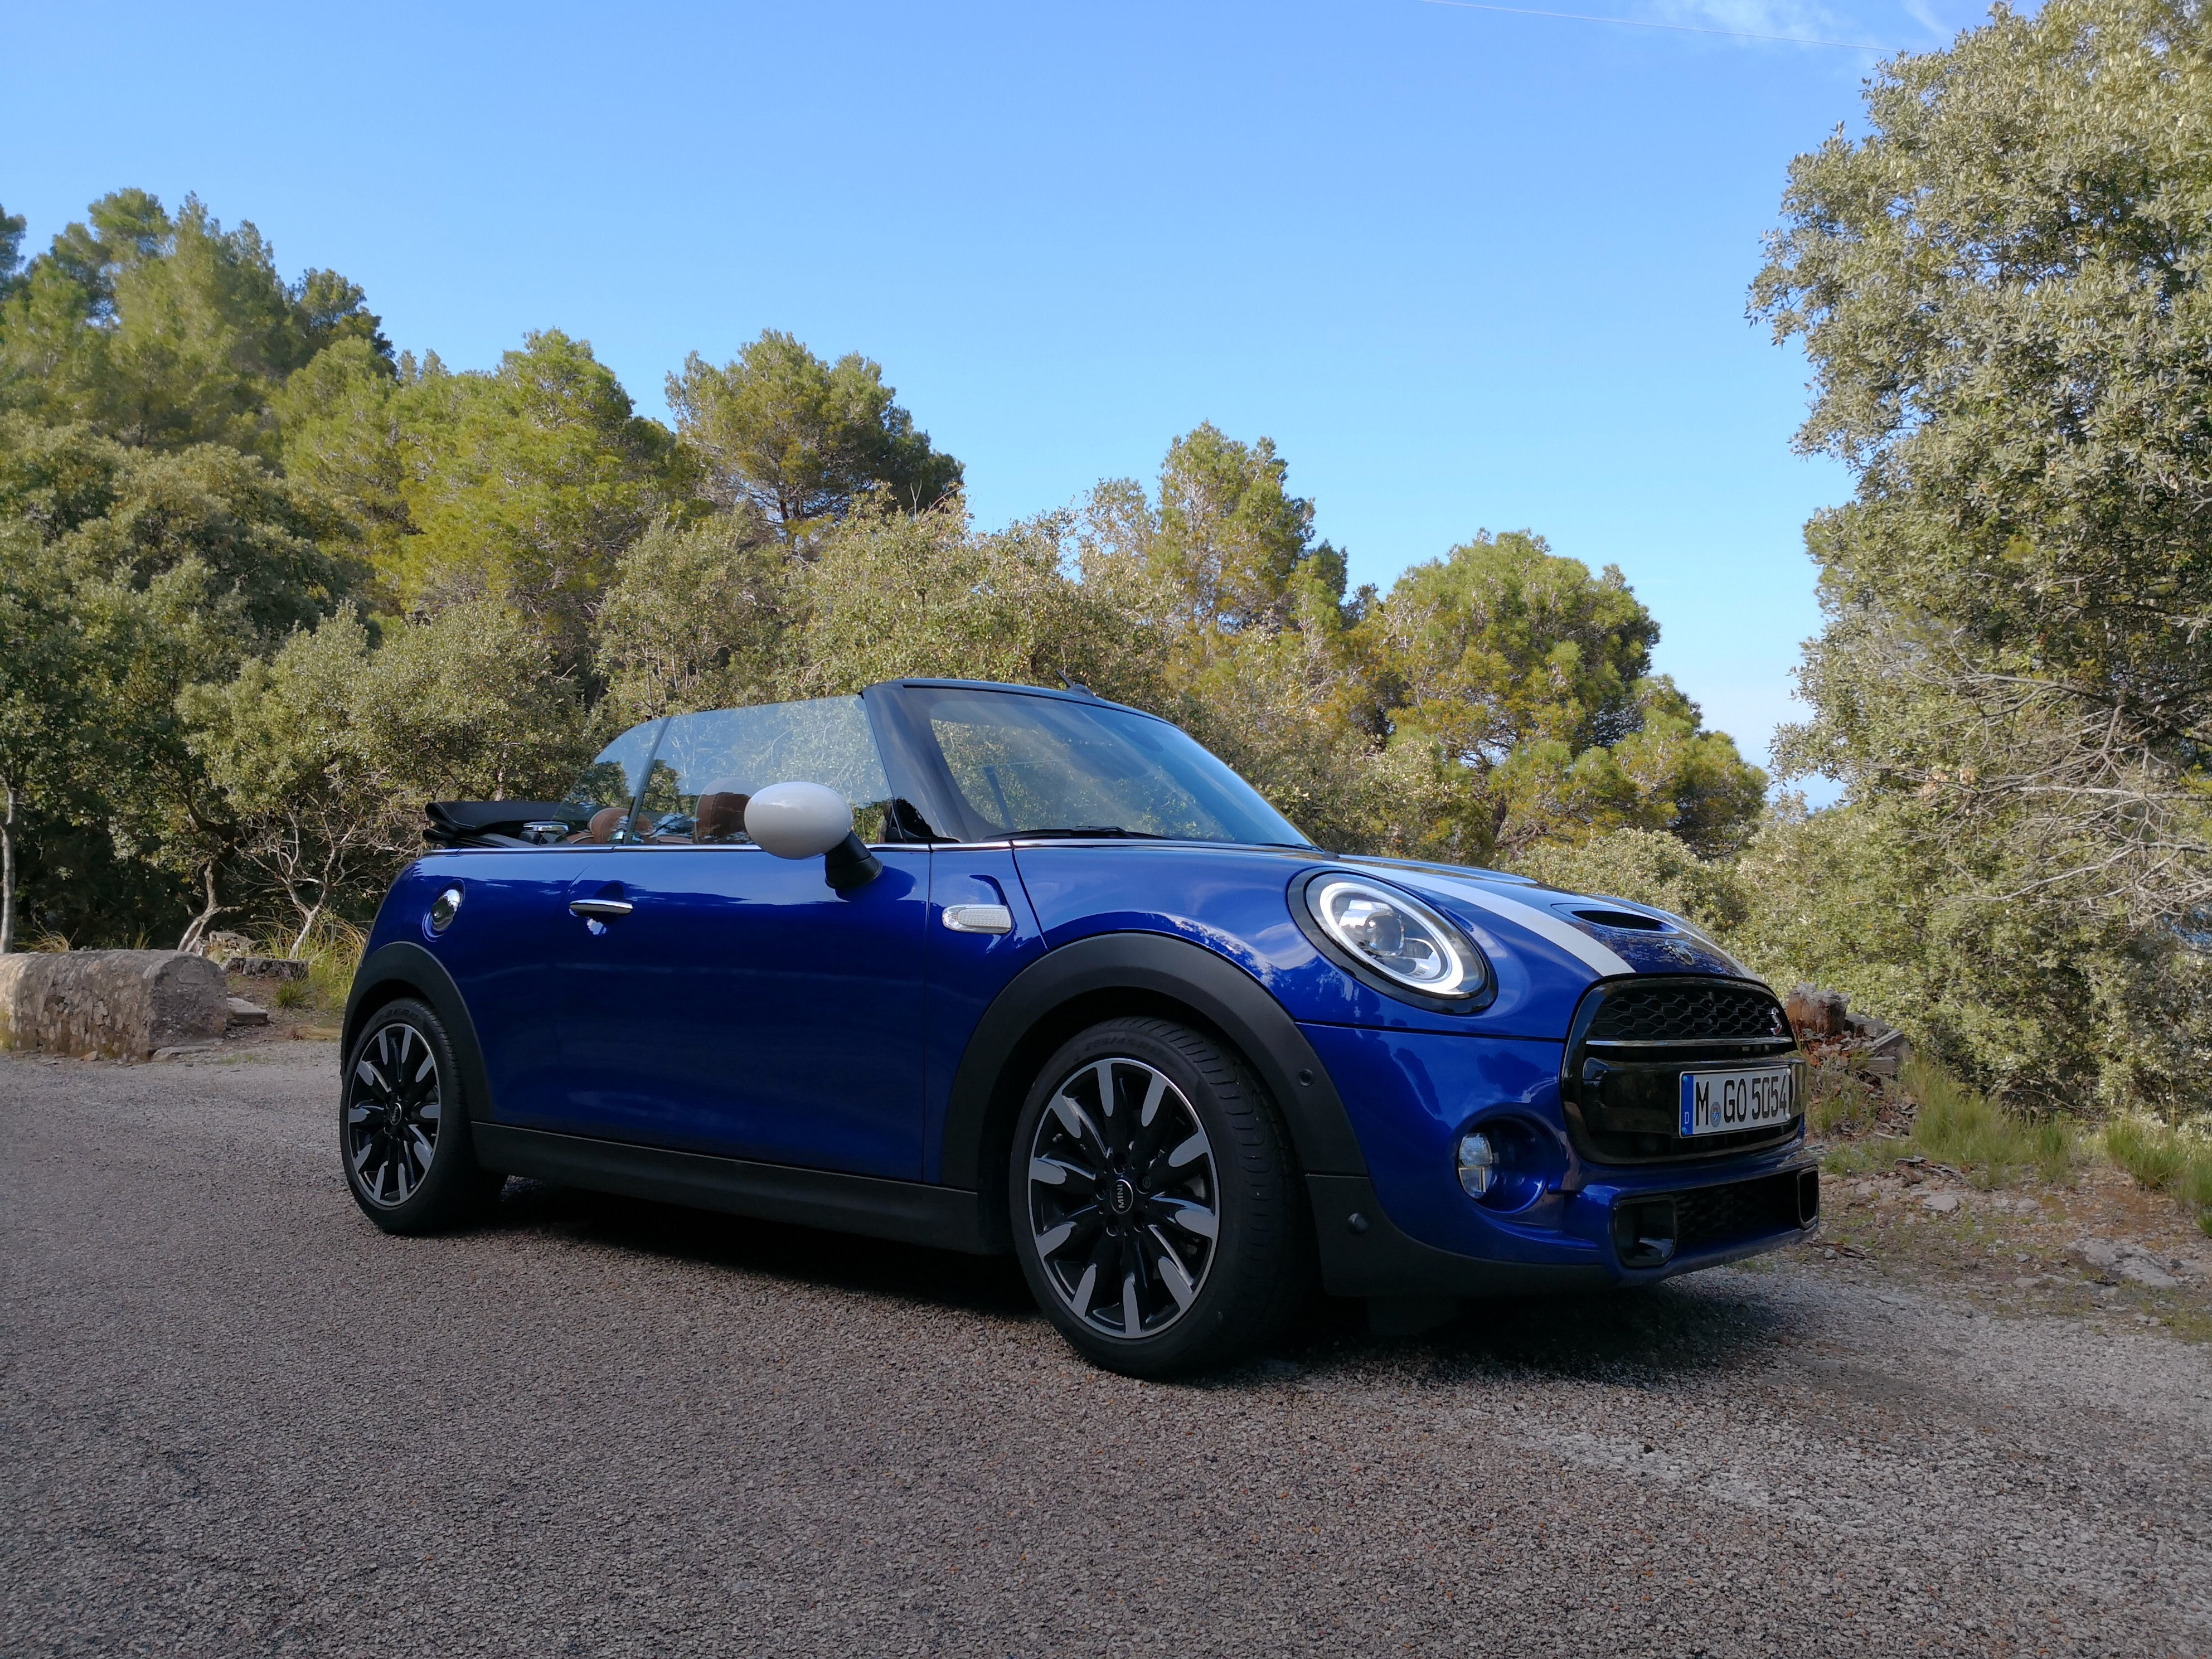 new 2018 mini models first drive of the latest cooper s hatch and convertible gearopen. Black Bedroom Furniture Sets. Home Design Ideas